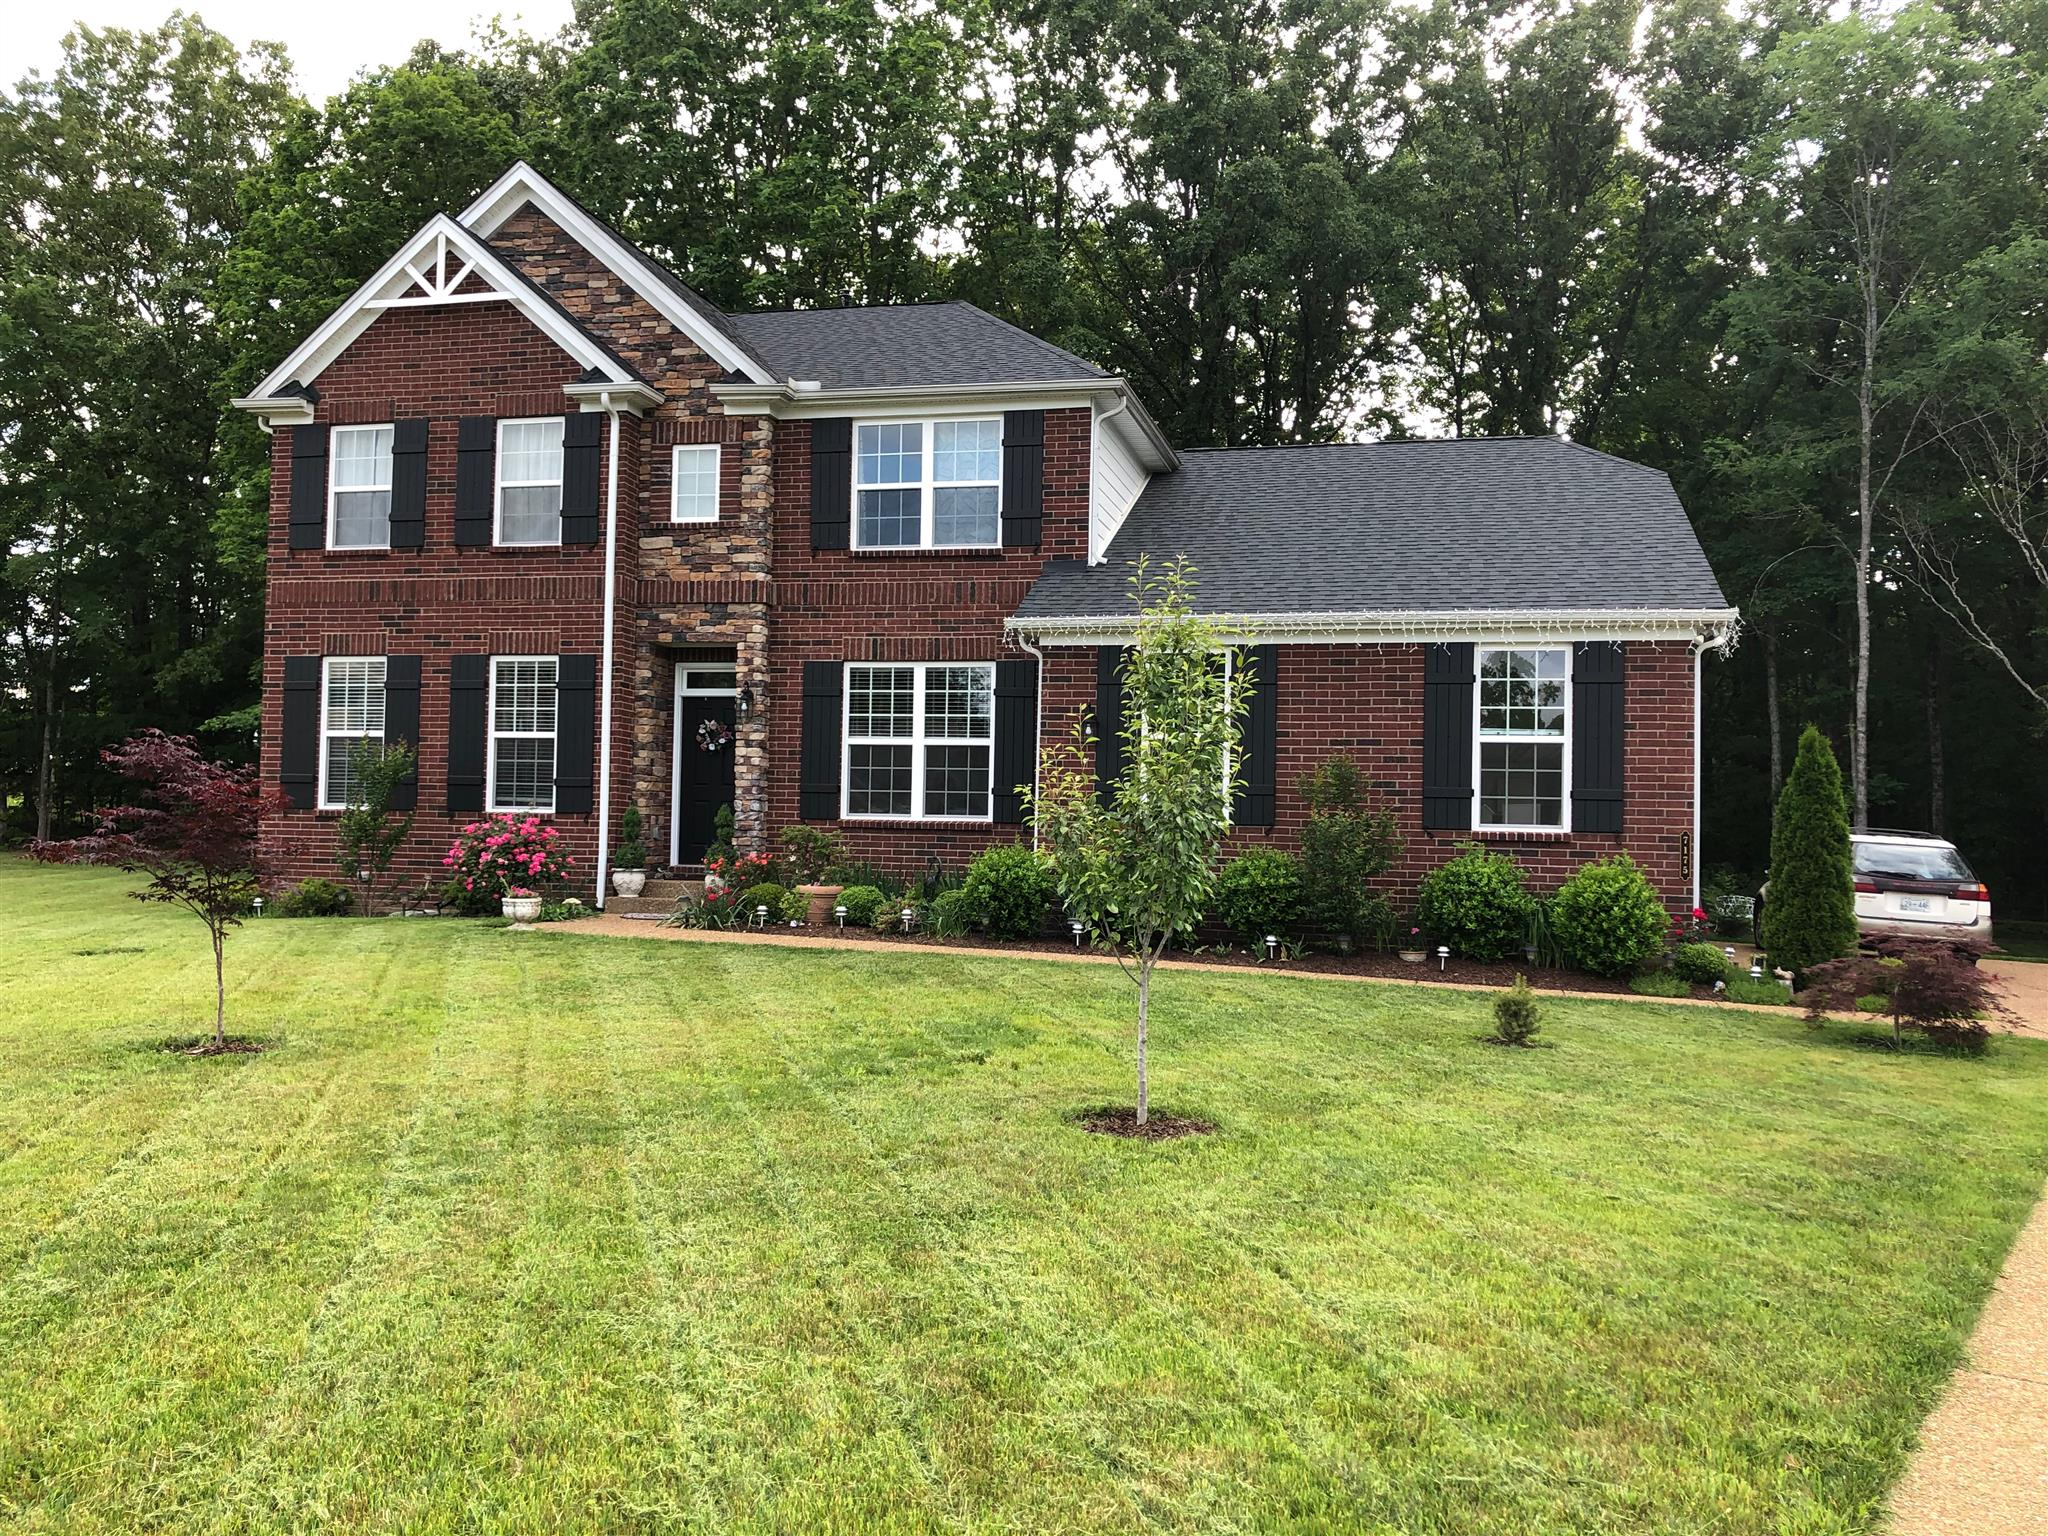 7175 Triple Crown Lane, Fairview, Tennessee